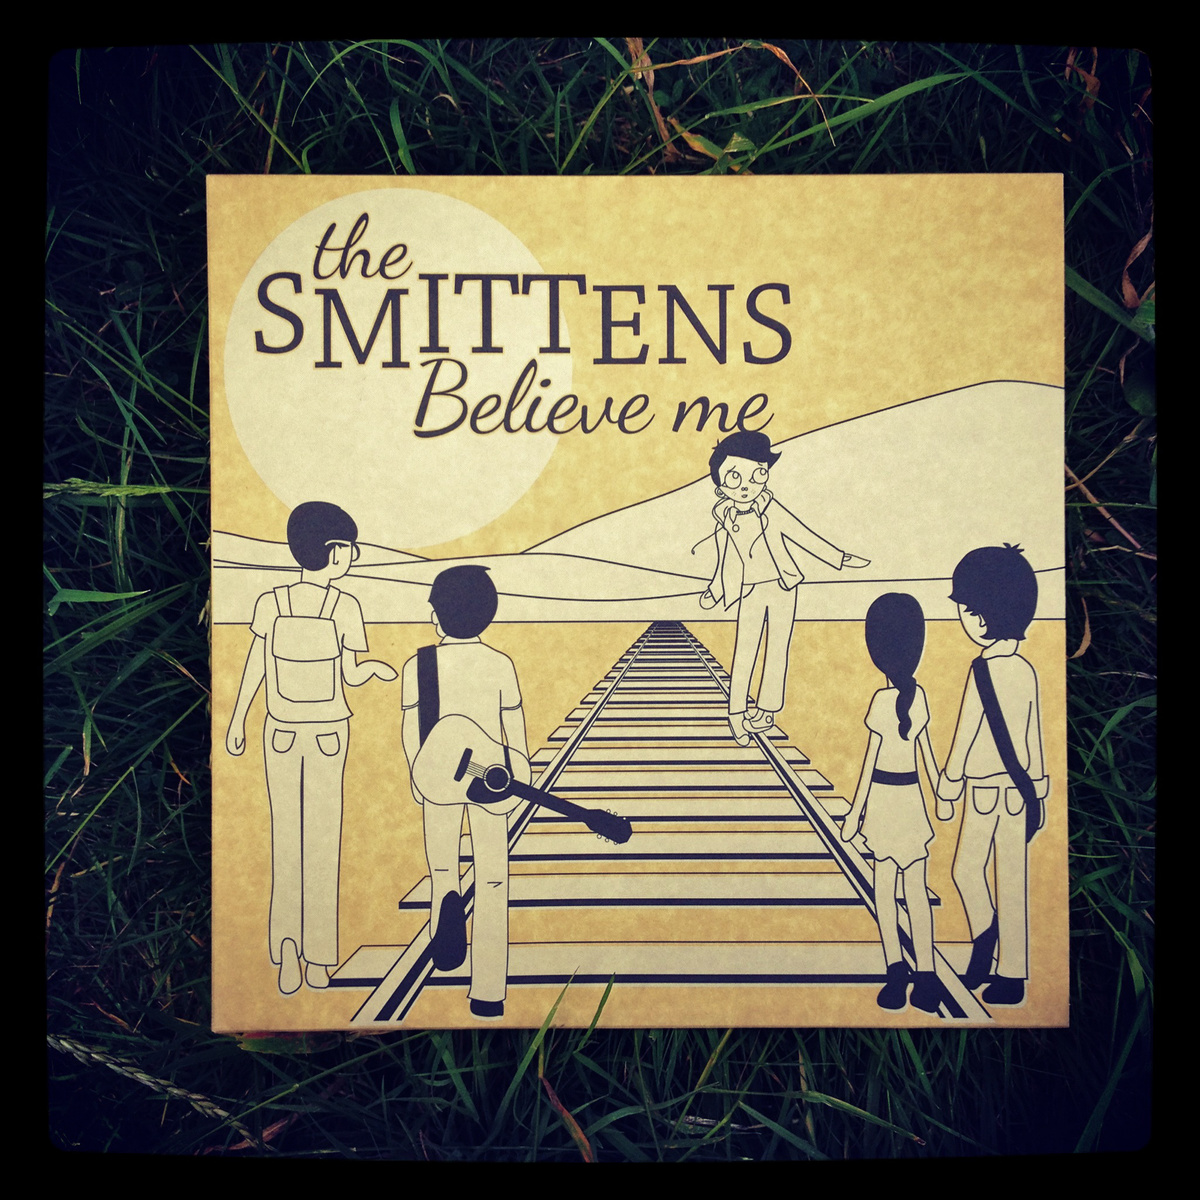 Smittens Believe Me Photo by Tom Aston